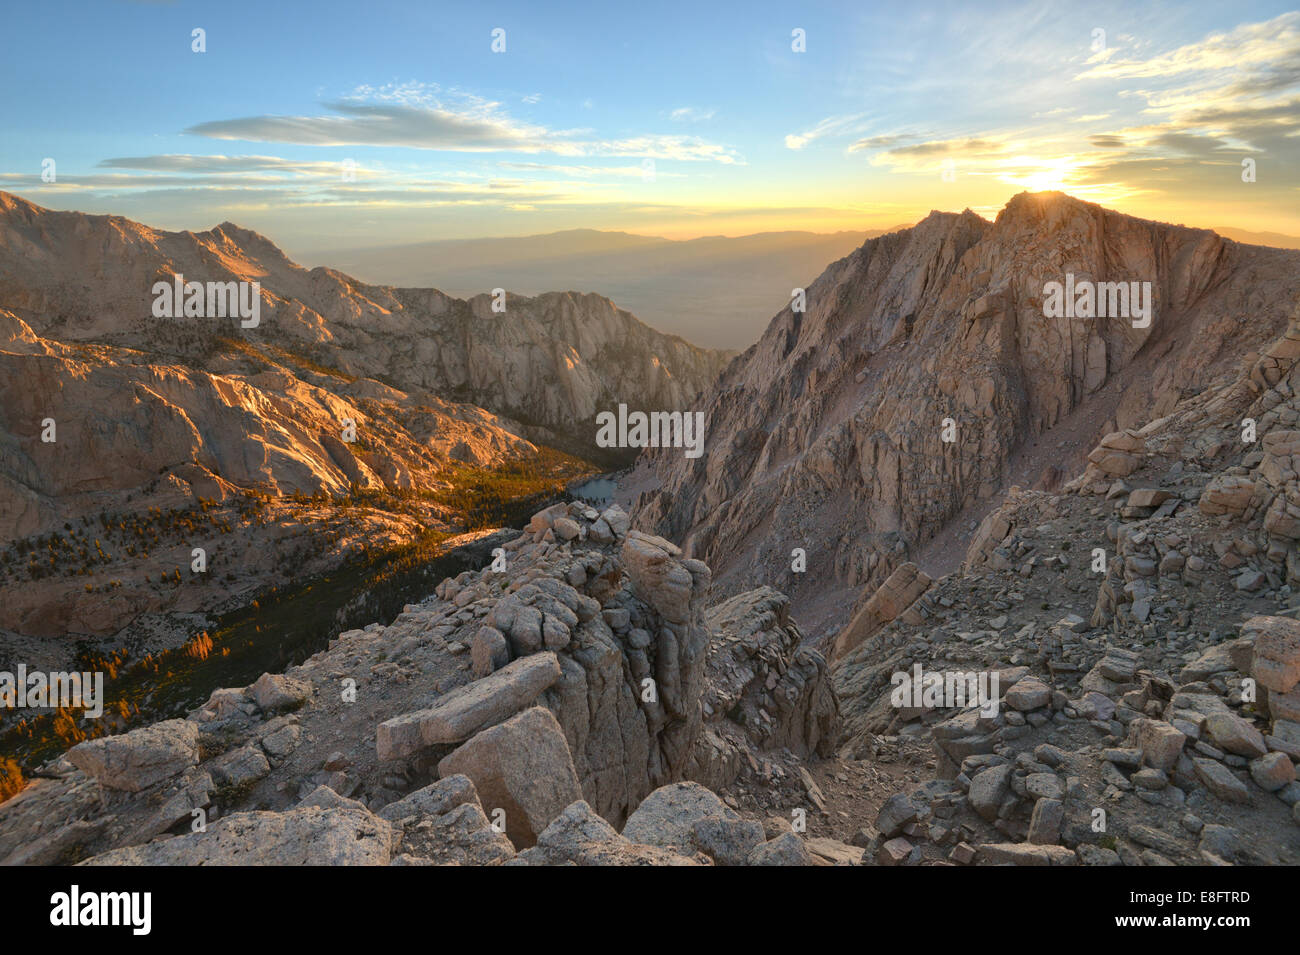 Sunrise Over Candlelight Peak - Stock Image